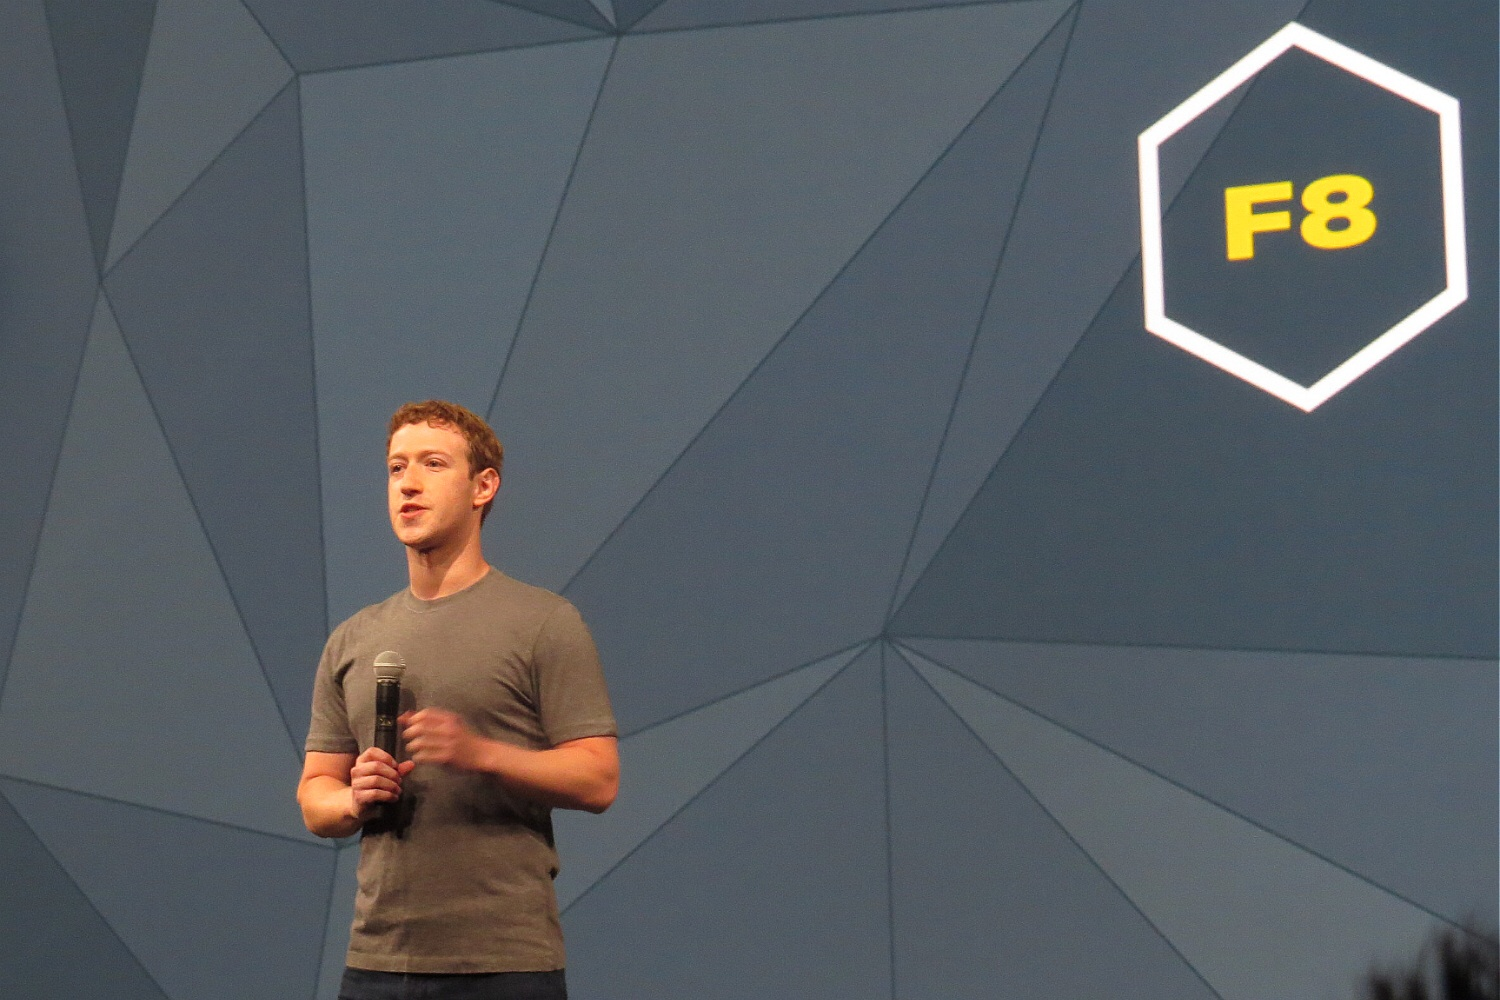 Mark Zuckerberg gives the keynote at Facebook's f8 conference in San Francisco on April 30, 2014